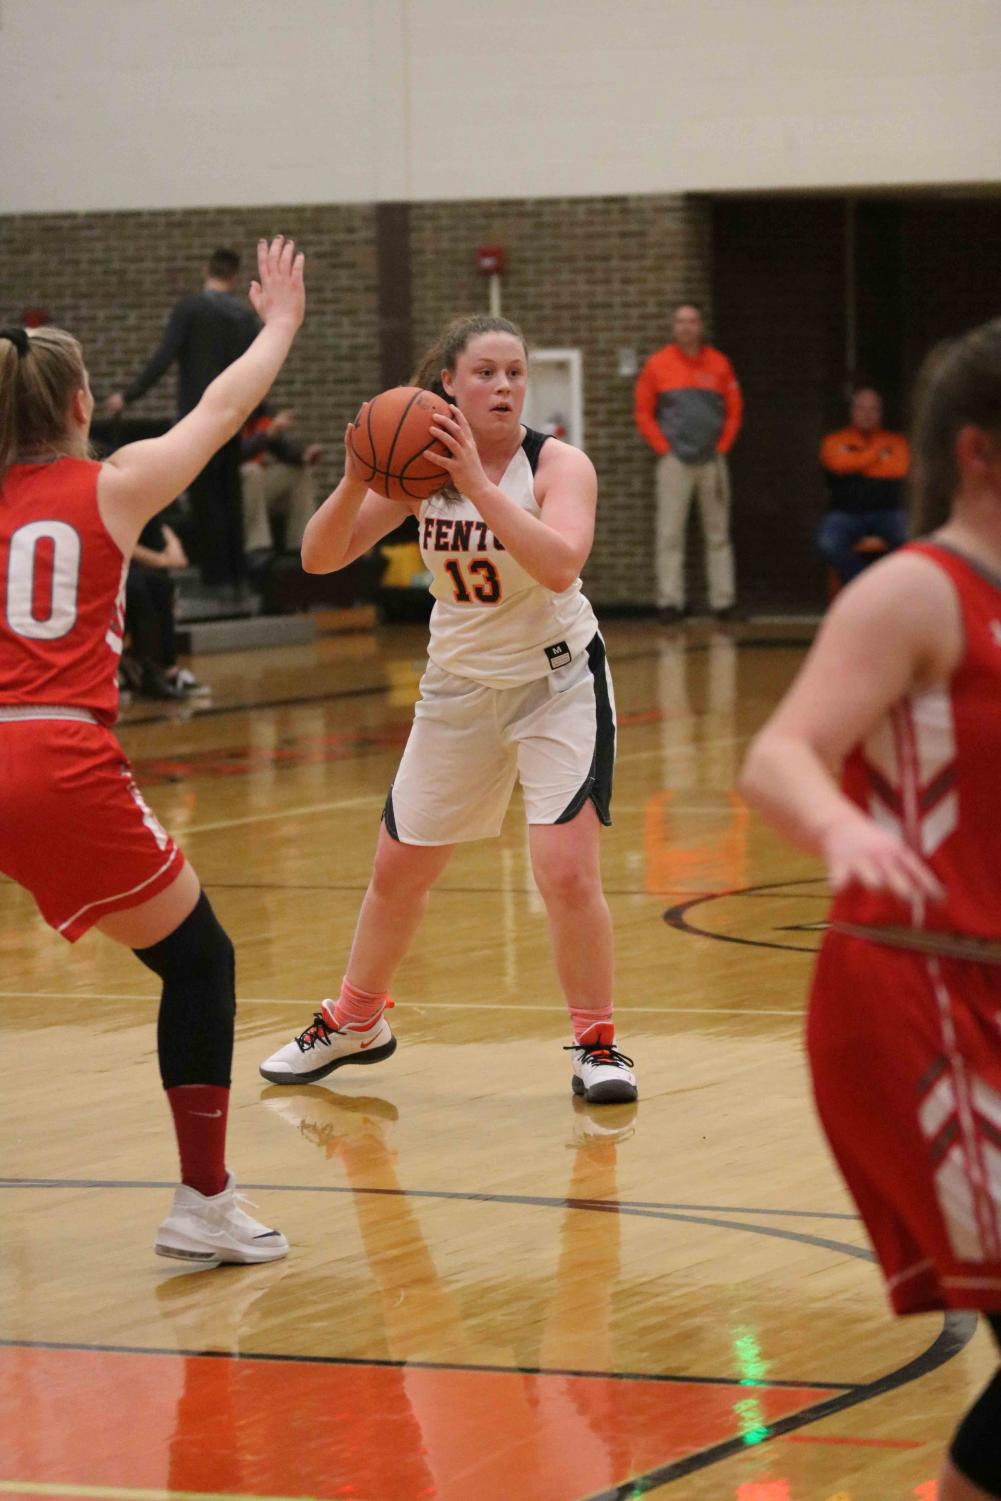 On her feet, sophomore Kyla Lynch gets ready to pass the ball. The girls varsity basketball team played before the boys varsity basketball team on Friday, Jan. 4.